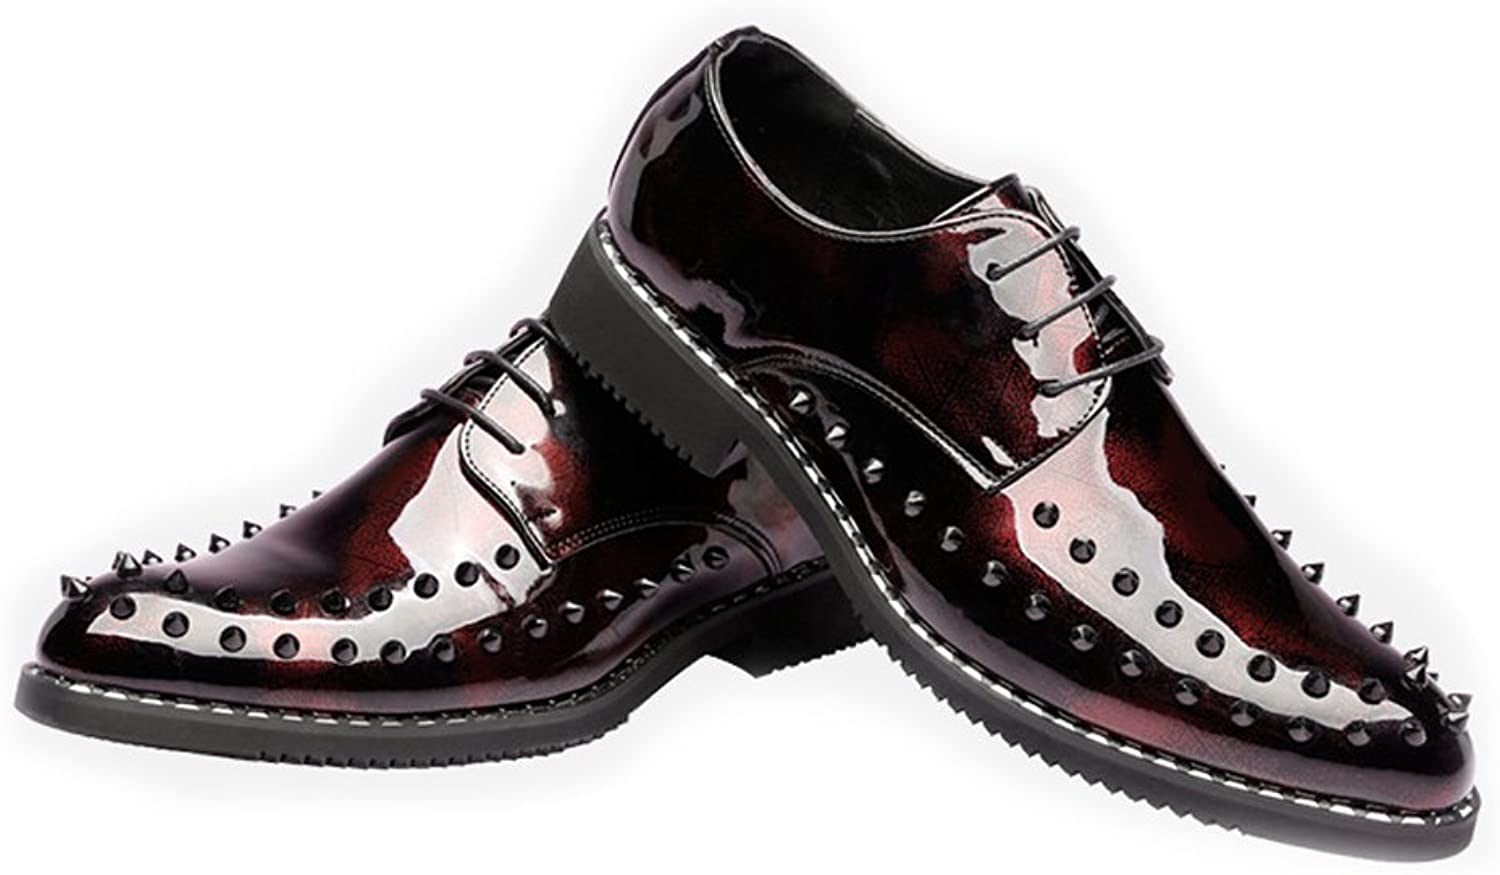 YongYeYaoBEN Fashion Punk Style Lace Up Men's shoes Smooth PU Leather Prom Loafer Breathable Lined Oxfords with Rivets